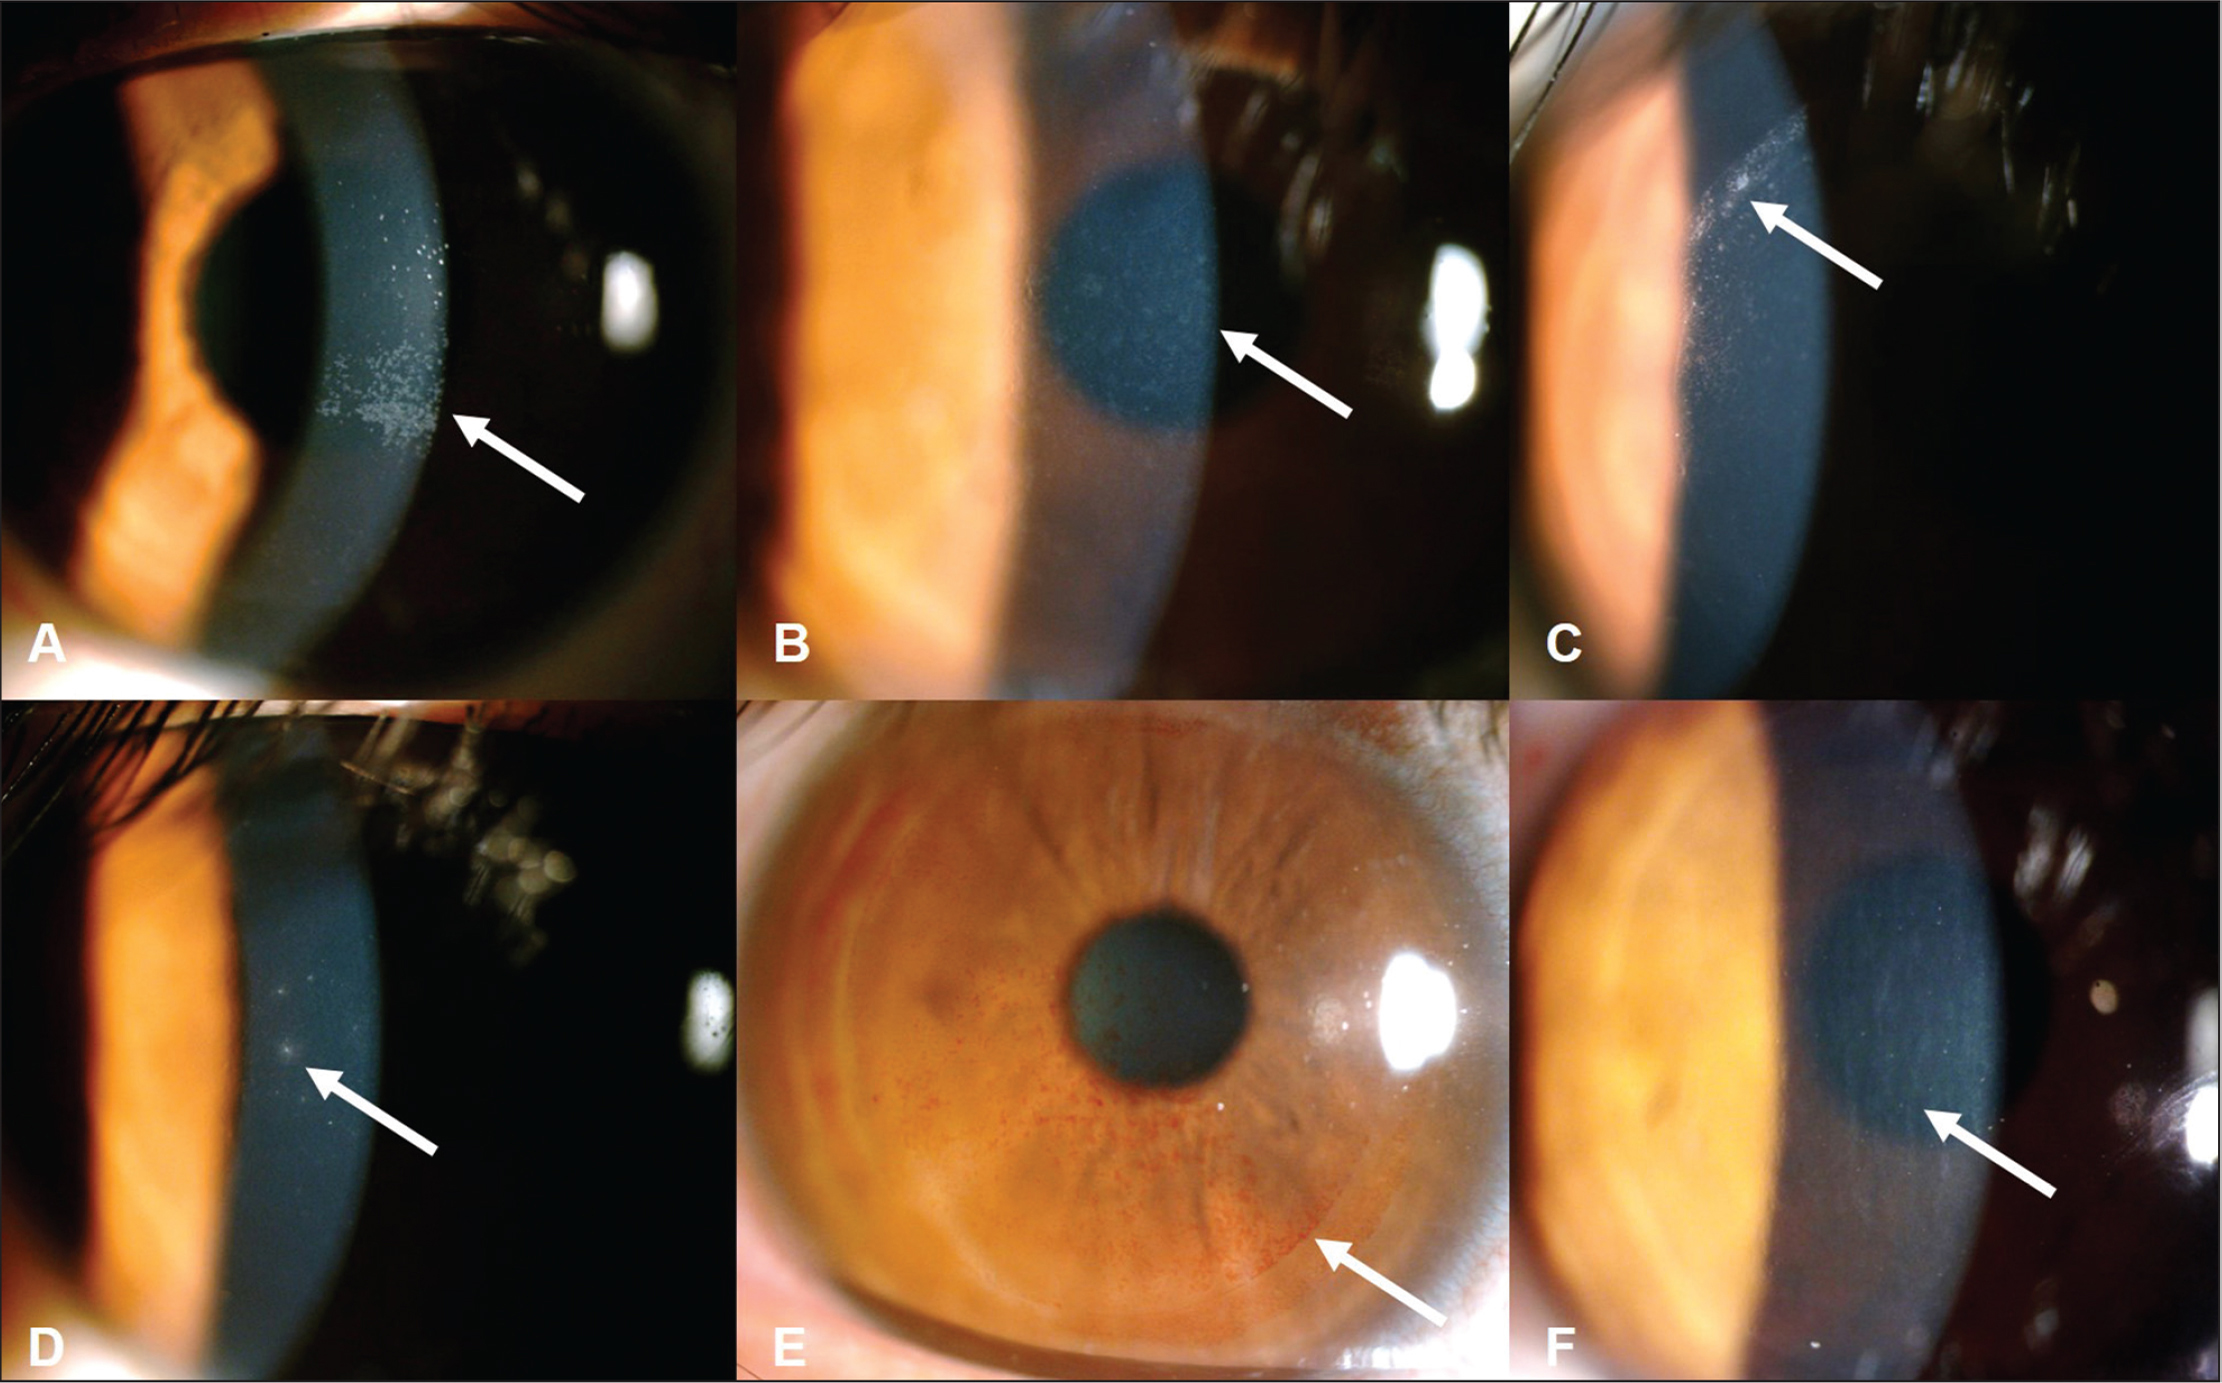 Slit-lamp photograph showing different postoperative corneal complications: (A) corneal epithelial erosion, (B) haze (grade 0.5), (C) interface debris, (D) infiltration with inflammatory cells, (E) interface blood, and (F) striae.